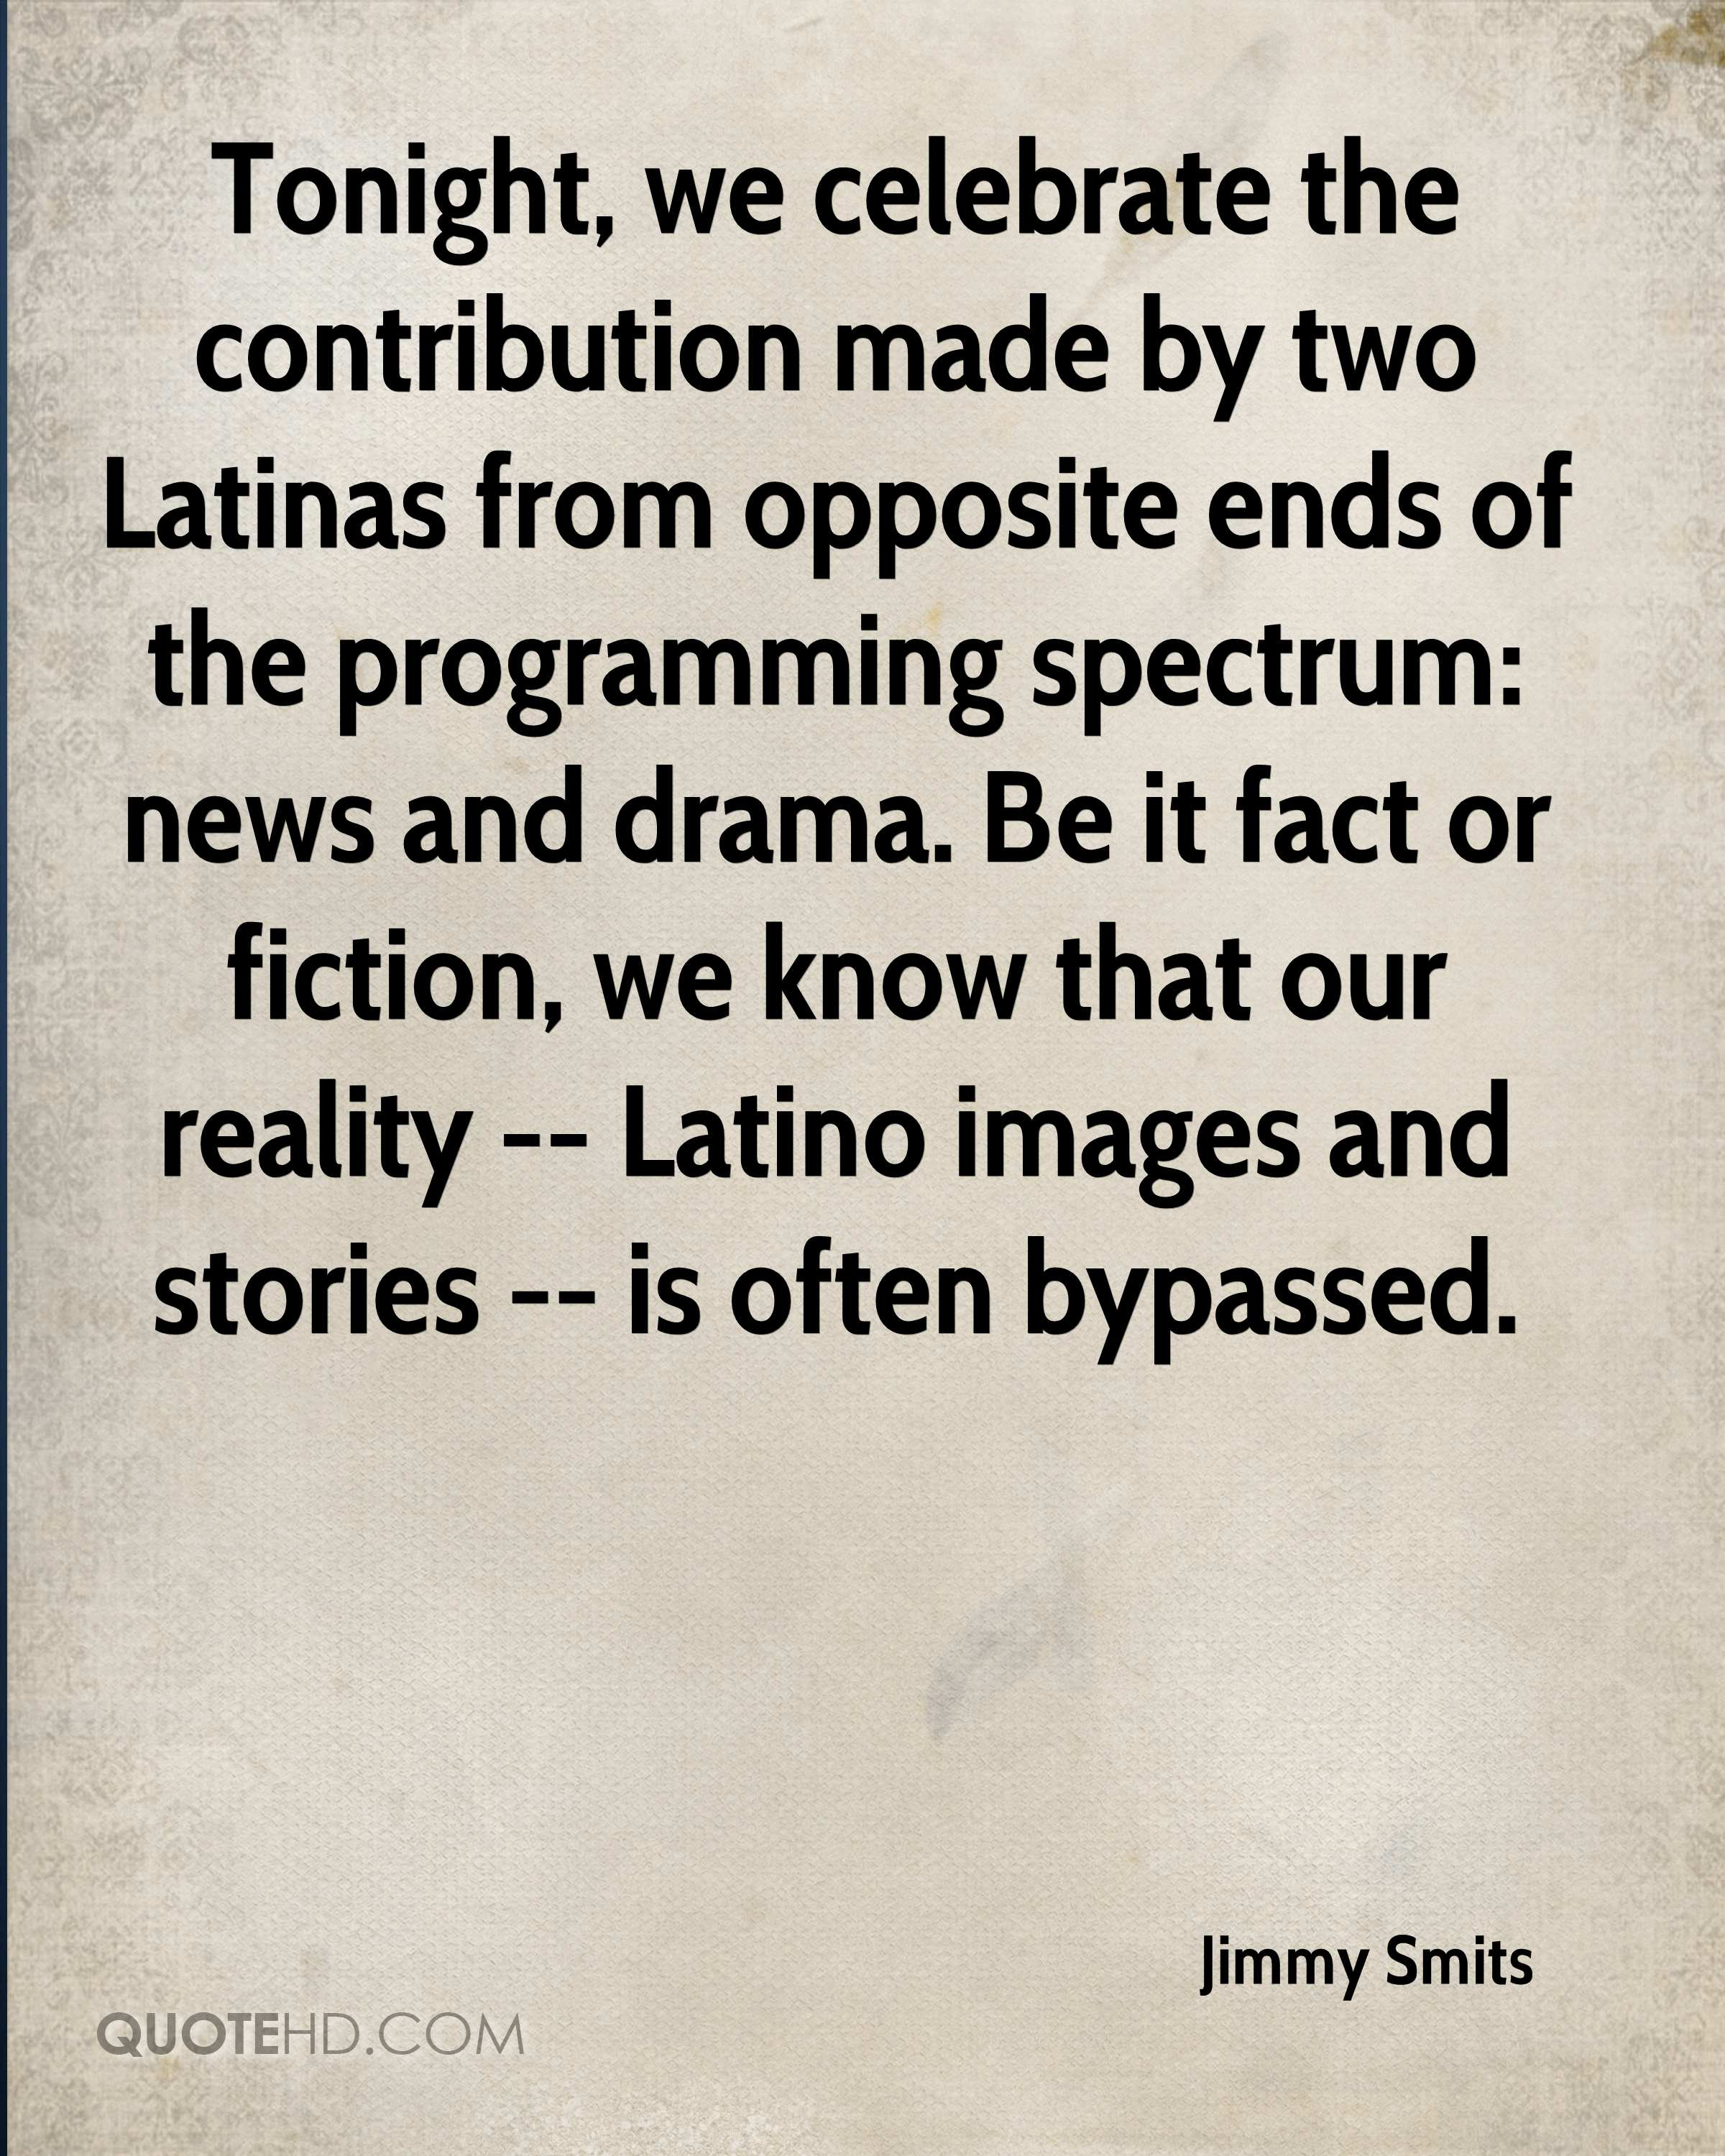 Tonight, we celebrate the contribution made by two Latinas from opposite ends of the programming spectrum: news and drama. Be it fact or fiction, we know that our reality -- Latino images and stories -- is often bypassed.